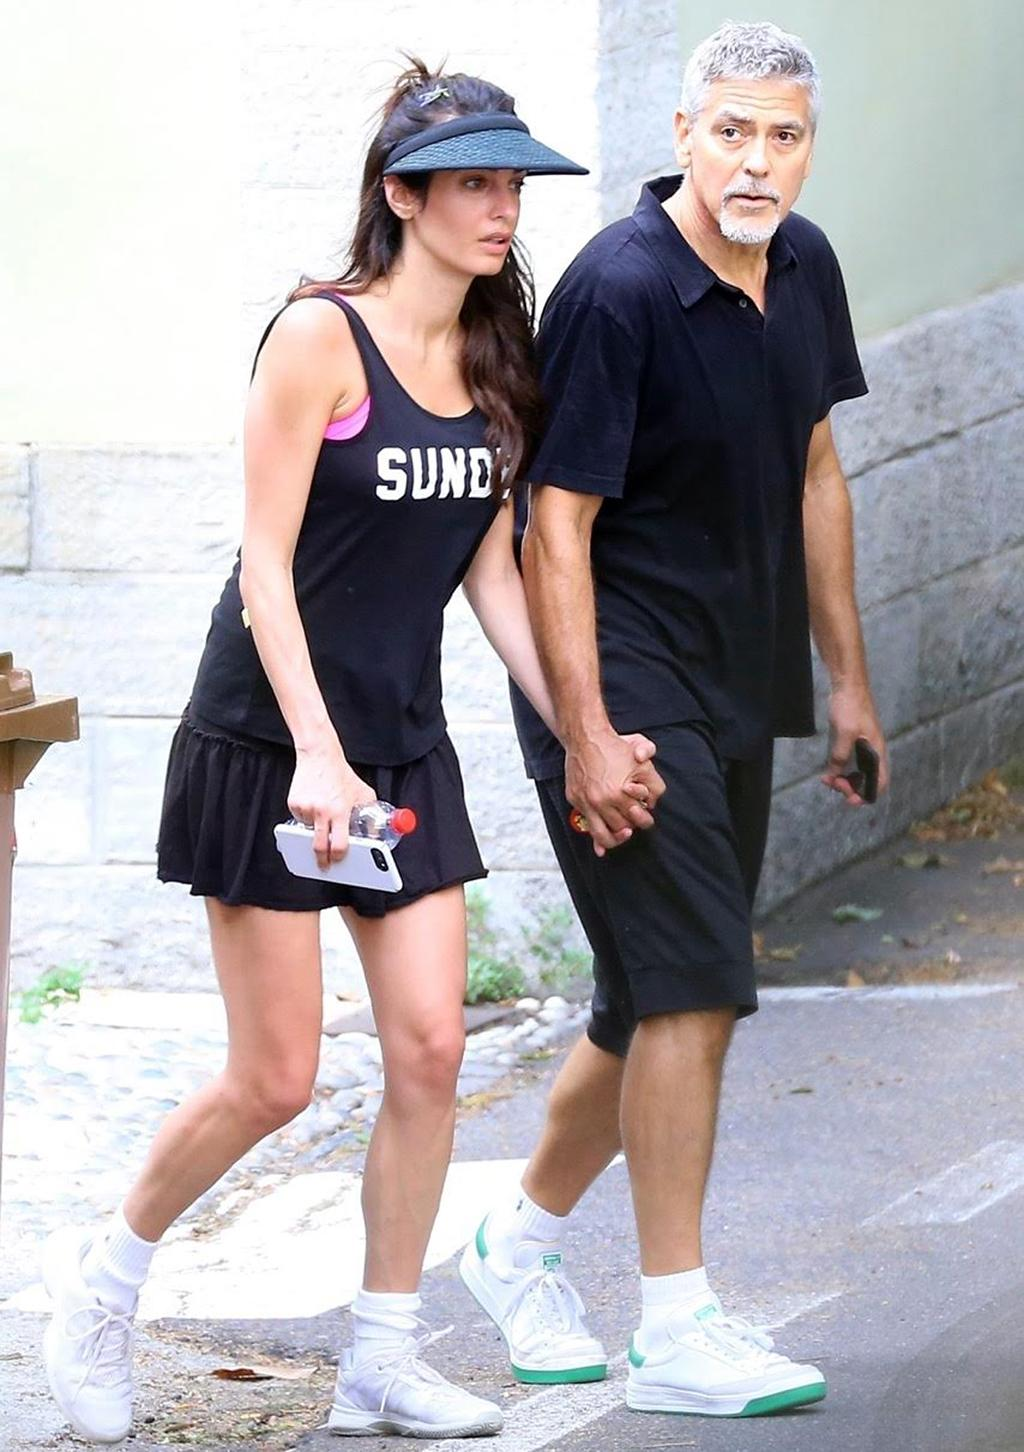 There S Something Very Surprising About Amal Clooney S Tennis Outfit